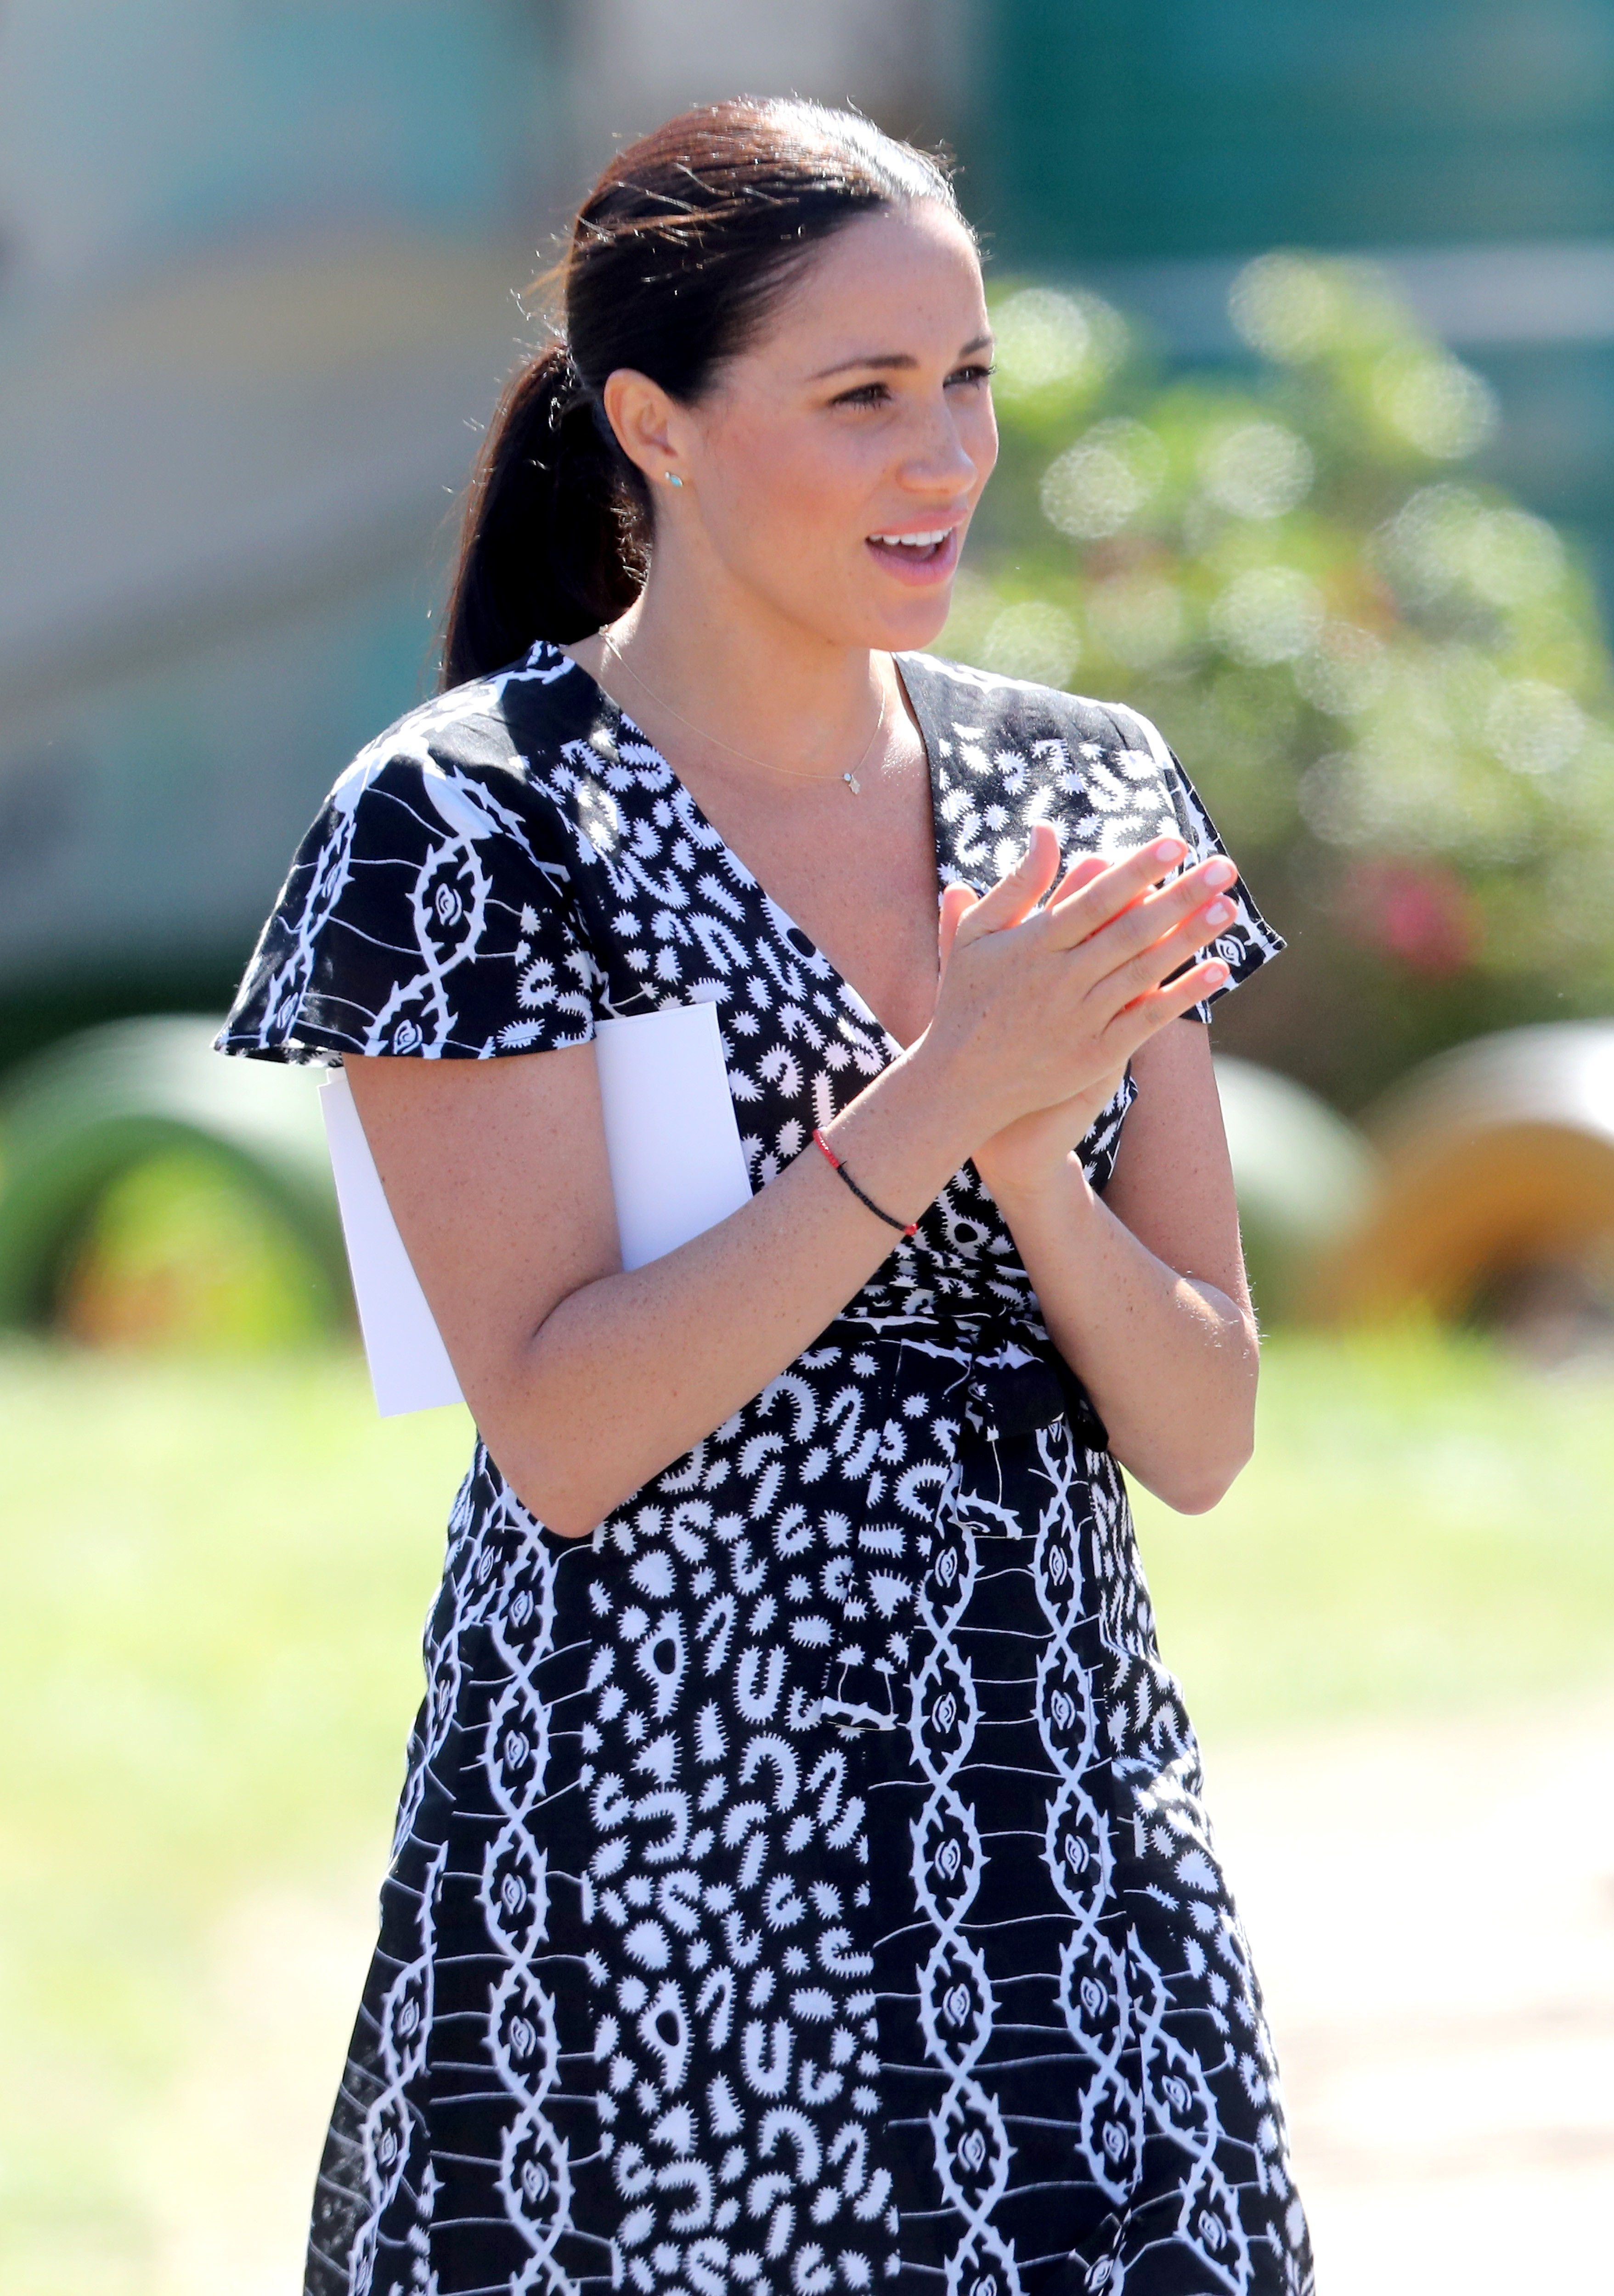 Meghan Markle usa vestido de marca africana no valor de R$ 355 (Foto: Getty Images)